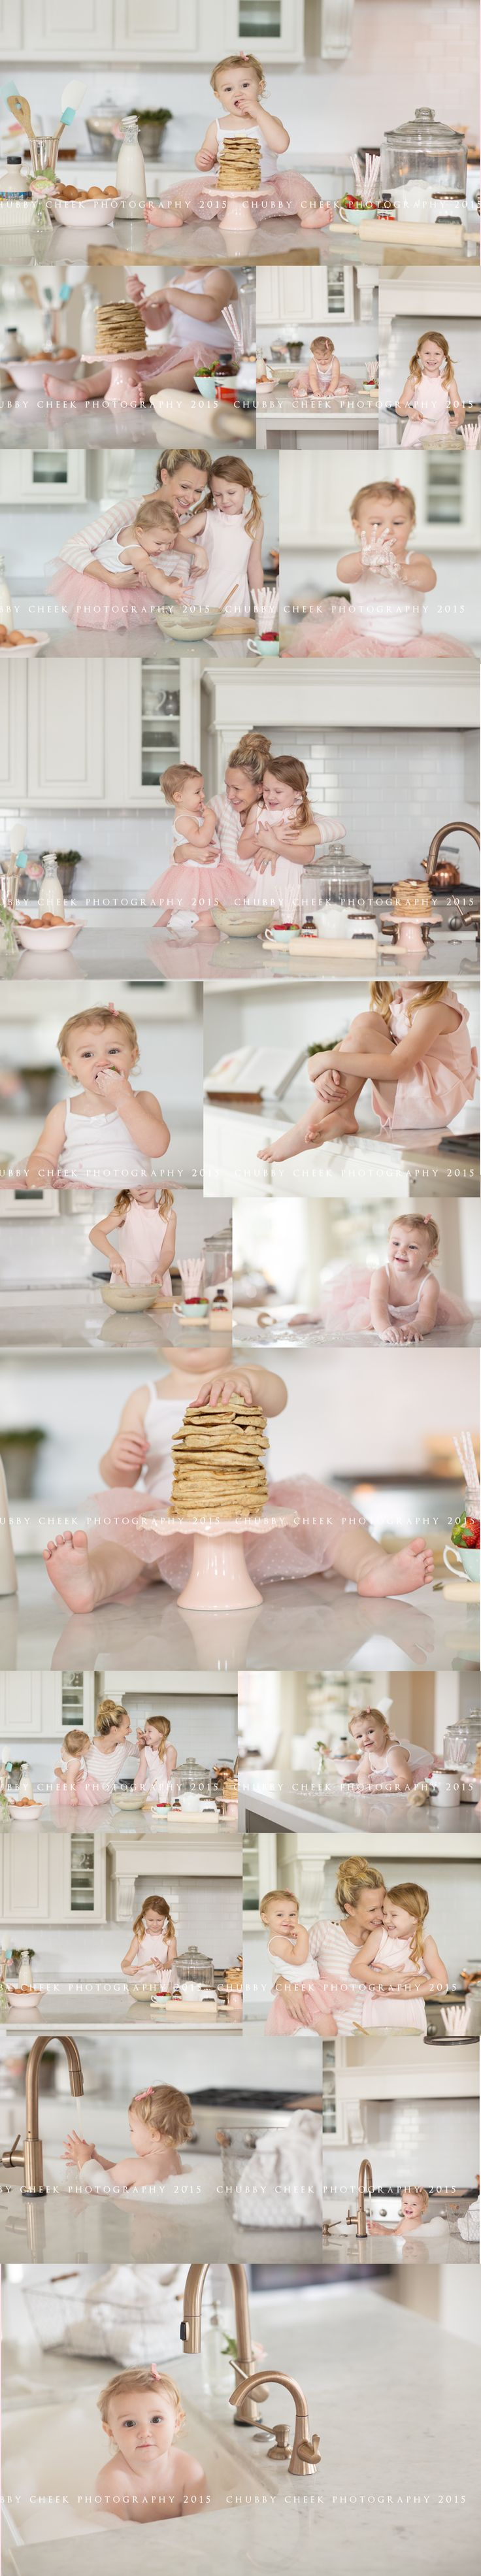 pancakes … in home lifestyle child photographer the woodlands texas